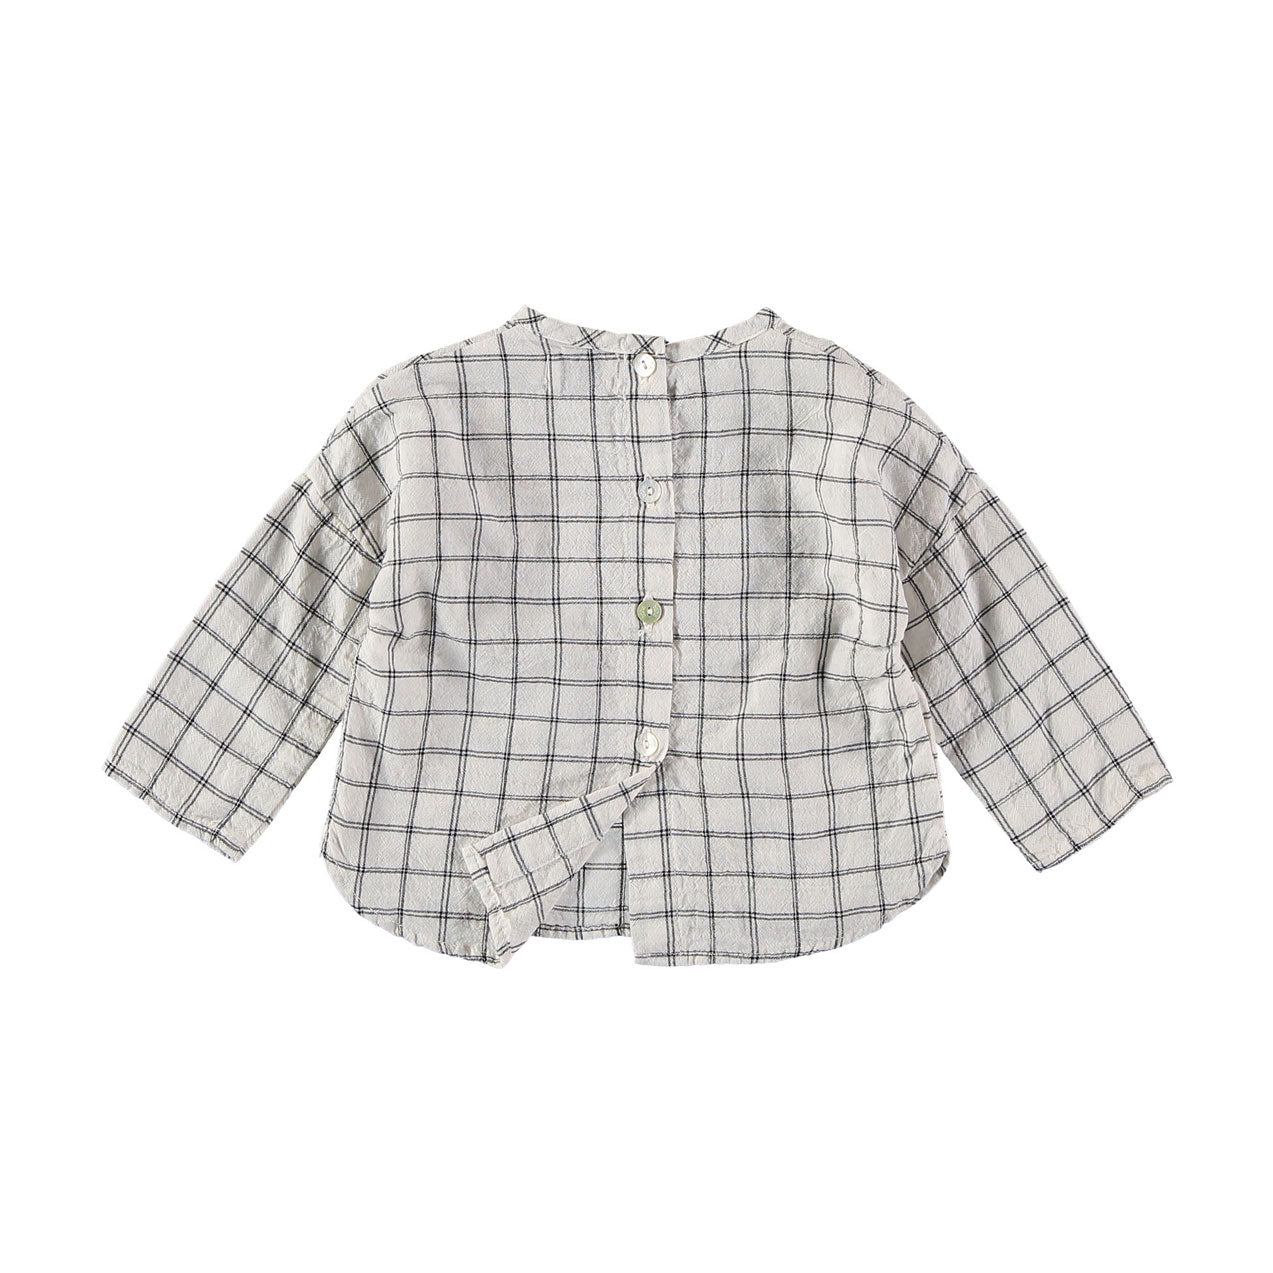 Buho Ecru Mateo Check Pockets Shirt